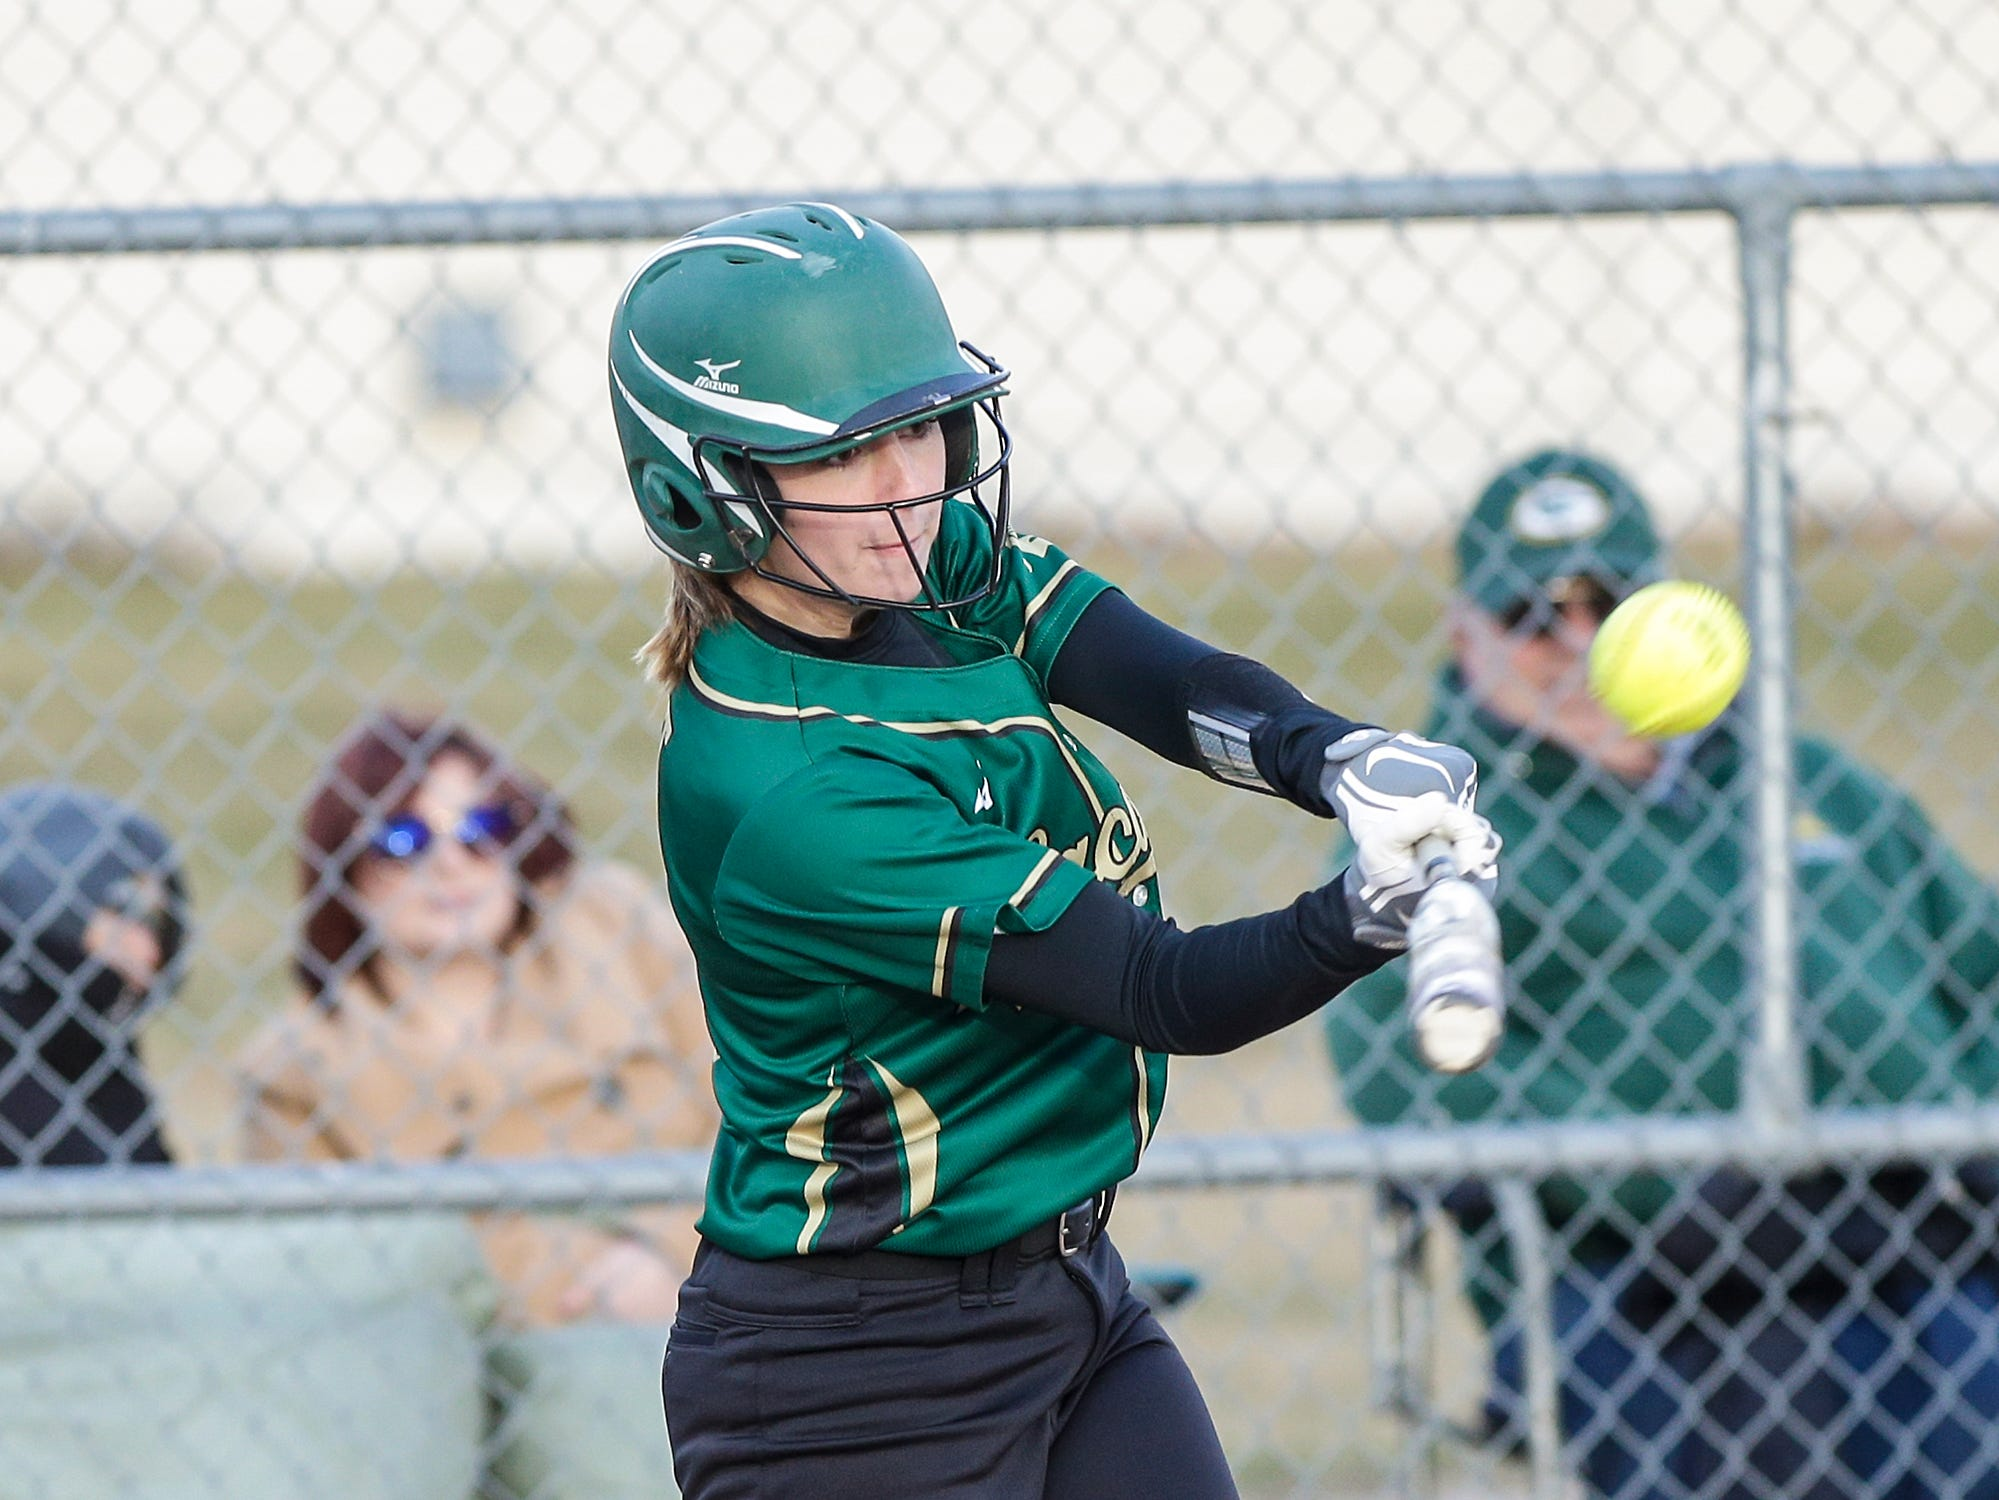 Laconia High School softball's Brooklyn Smit hits a sacrafice fly ball against Winnebago Lutheran Academy that scored a run in the 5th inning April 9, 2019 during their game in Fond du Lac, Wis. Laconia won the game 25-9. Doug Raflik/USA TODAY NETWORK-Wisconsin